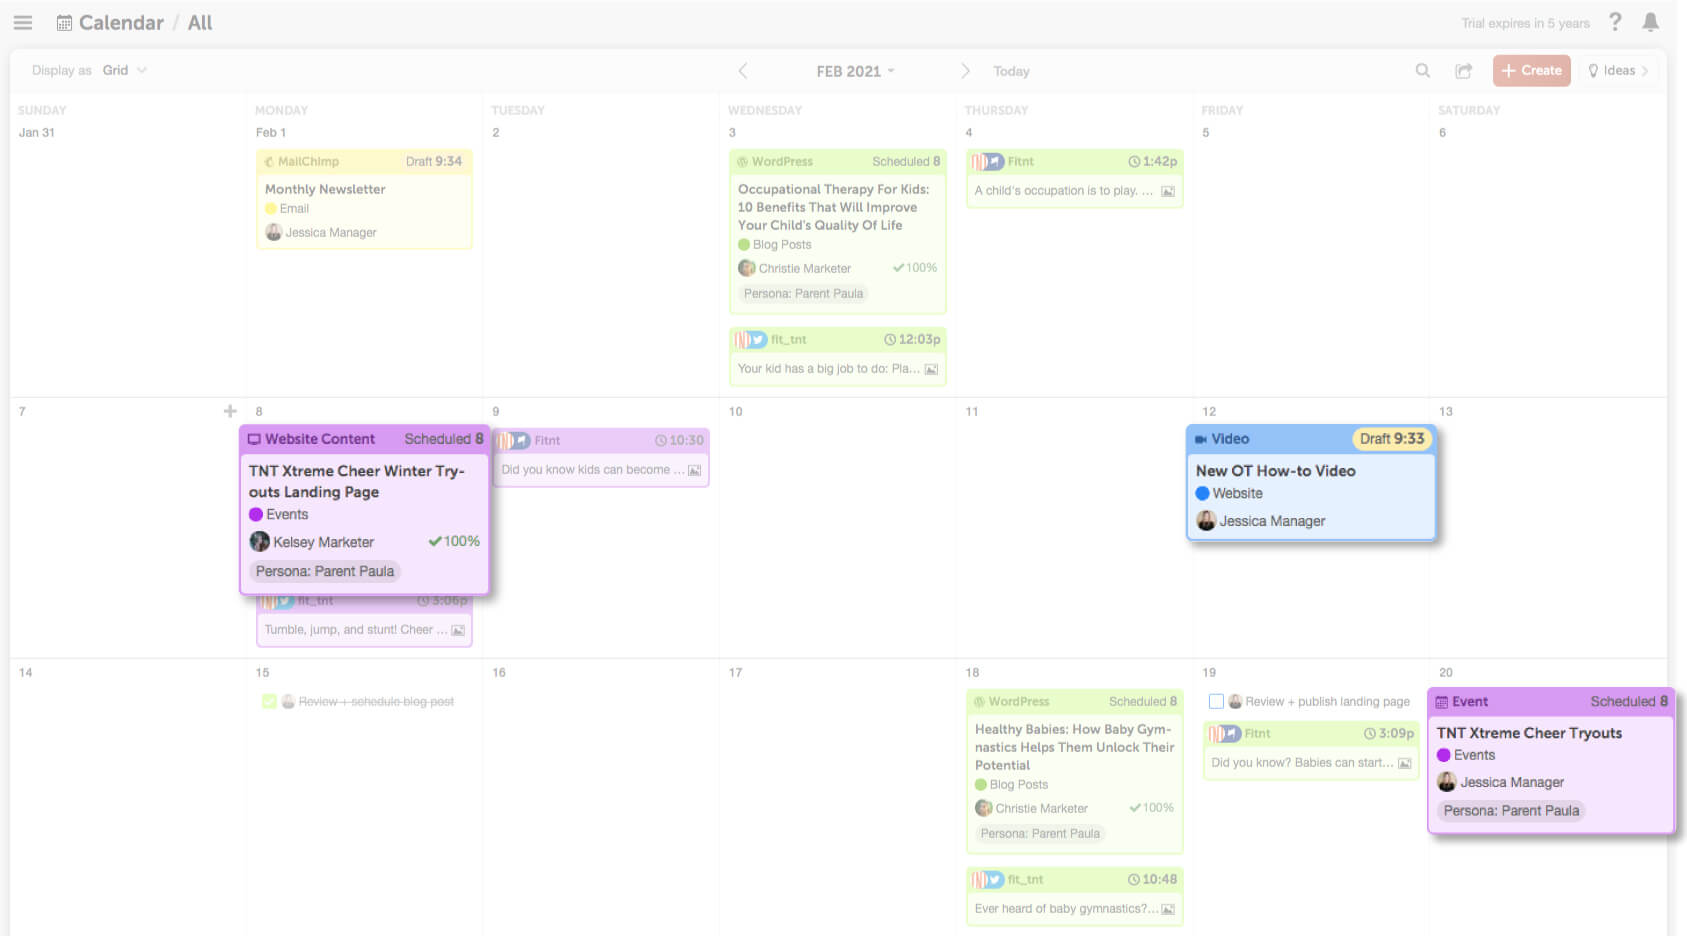 multiple projects on the calendar